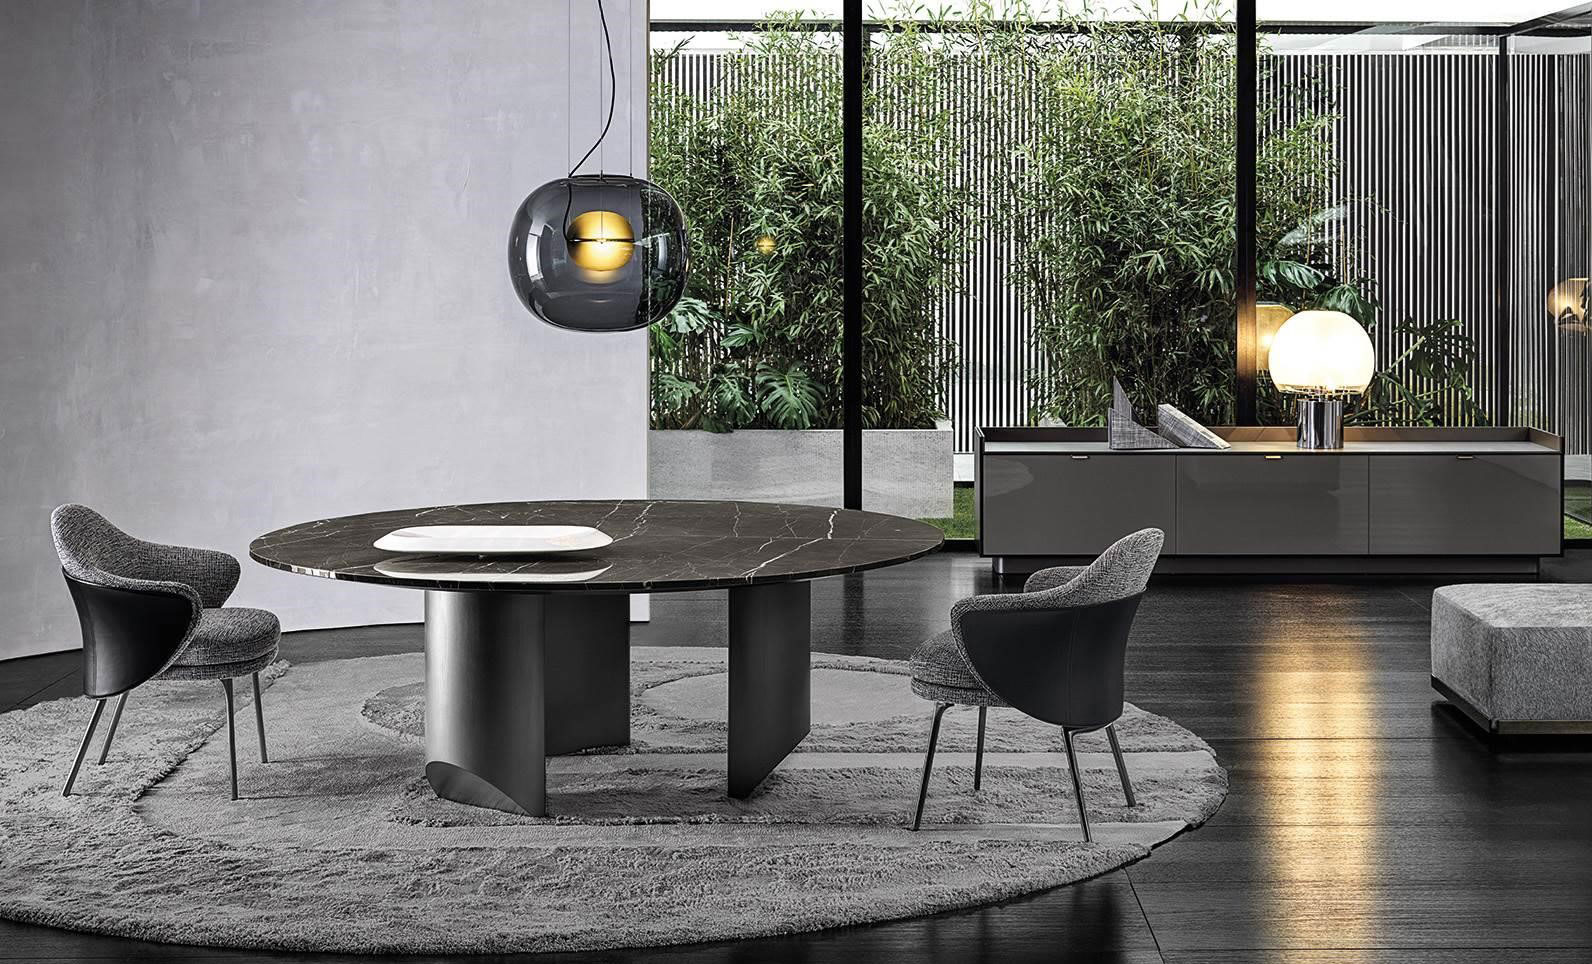 table, modern table, black table, trapezi, chairs, karekles, console, konsola, dining table, kitchen table, andreotti, andreotti furniture, epipla, furniture, limassol, cyprus